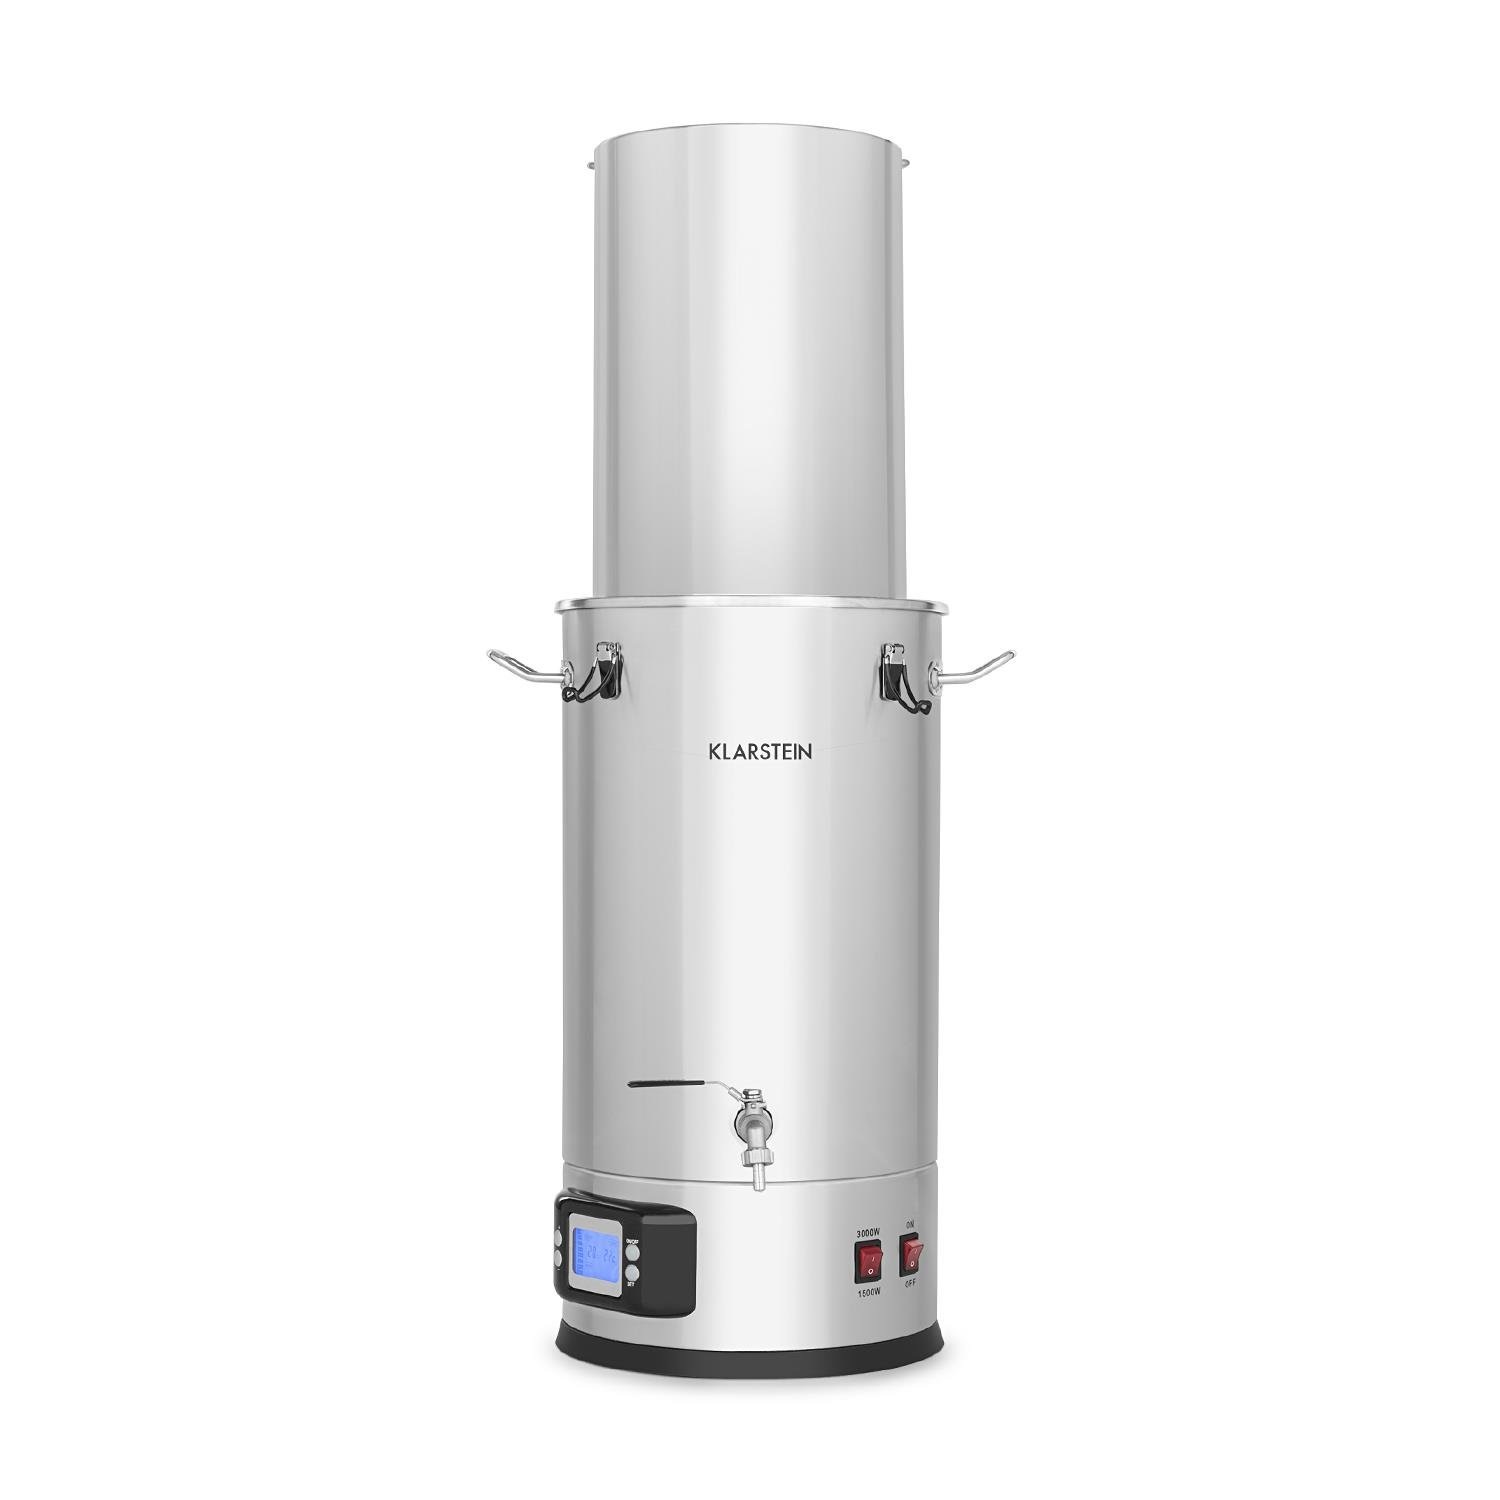 Klarstein Maischfest • Beer Brewing Device • Mash Tun • 5-Piece Set • 1500 and 3000 Watts Power • 25-litre Capacity • LCD Display and Touch Control Panel • Temperature • Stainless Steel